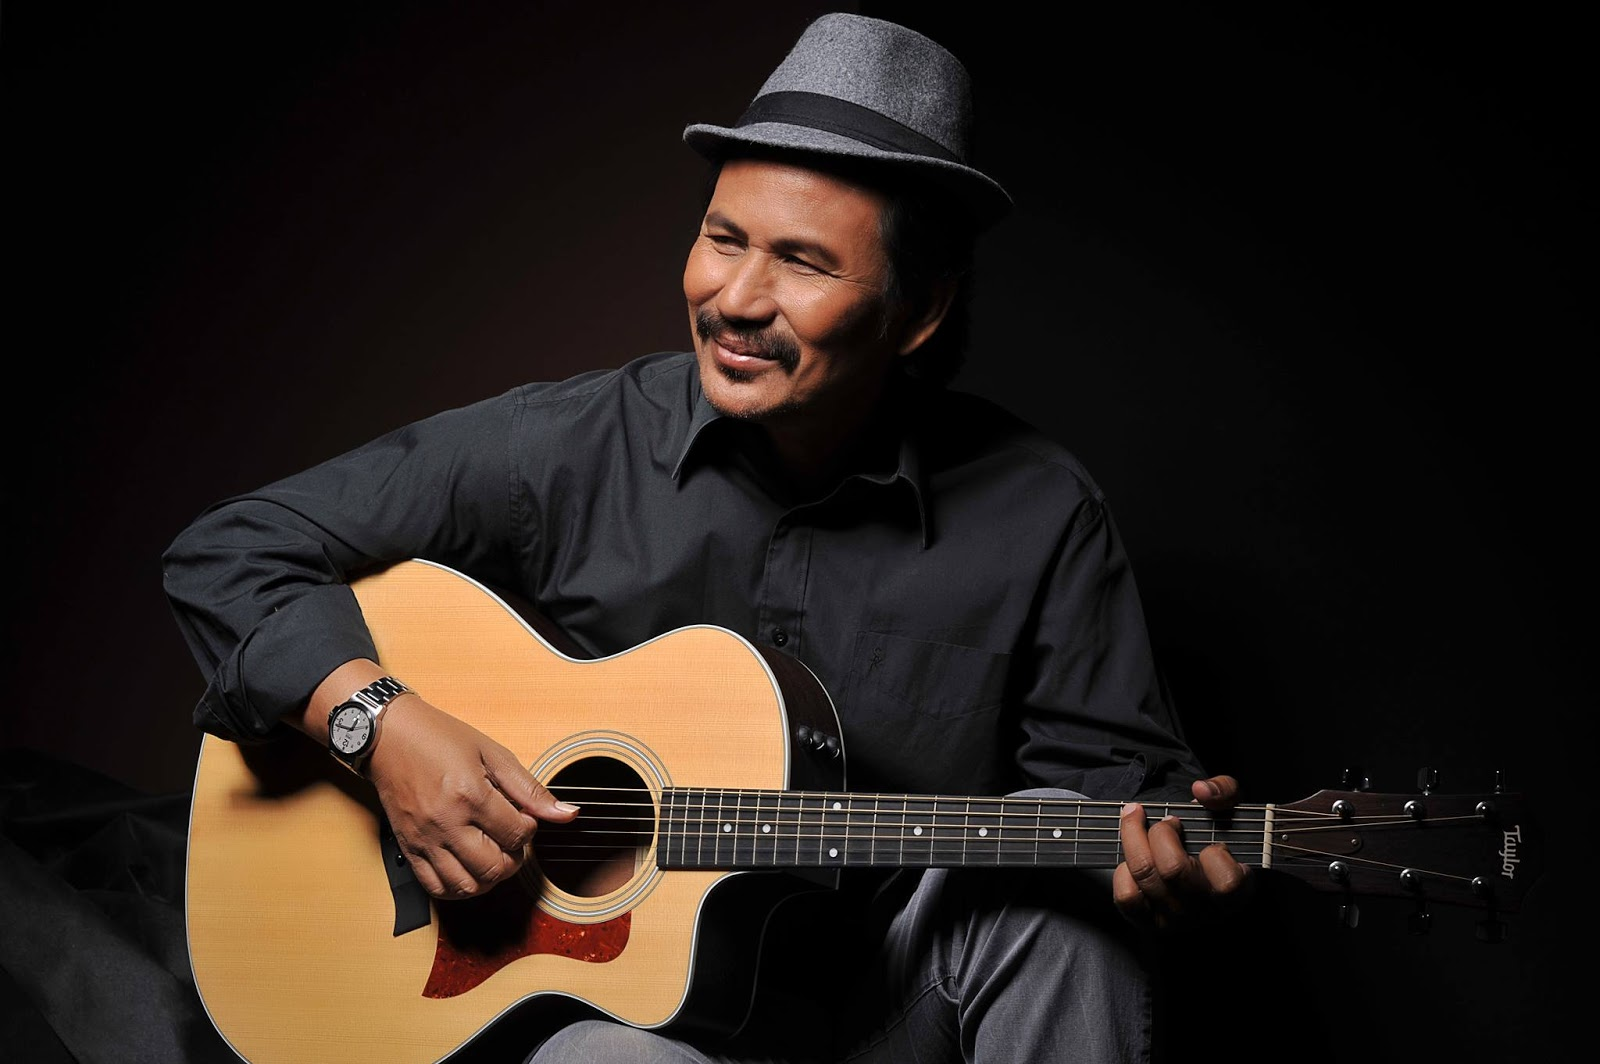 M.Nasir wraps up tour with concert in Shah Alam